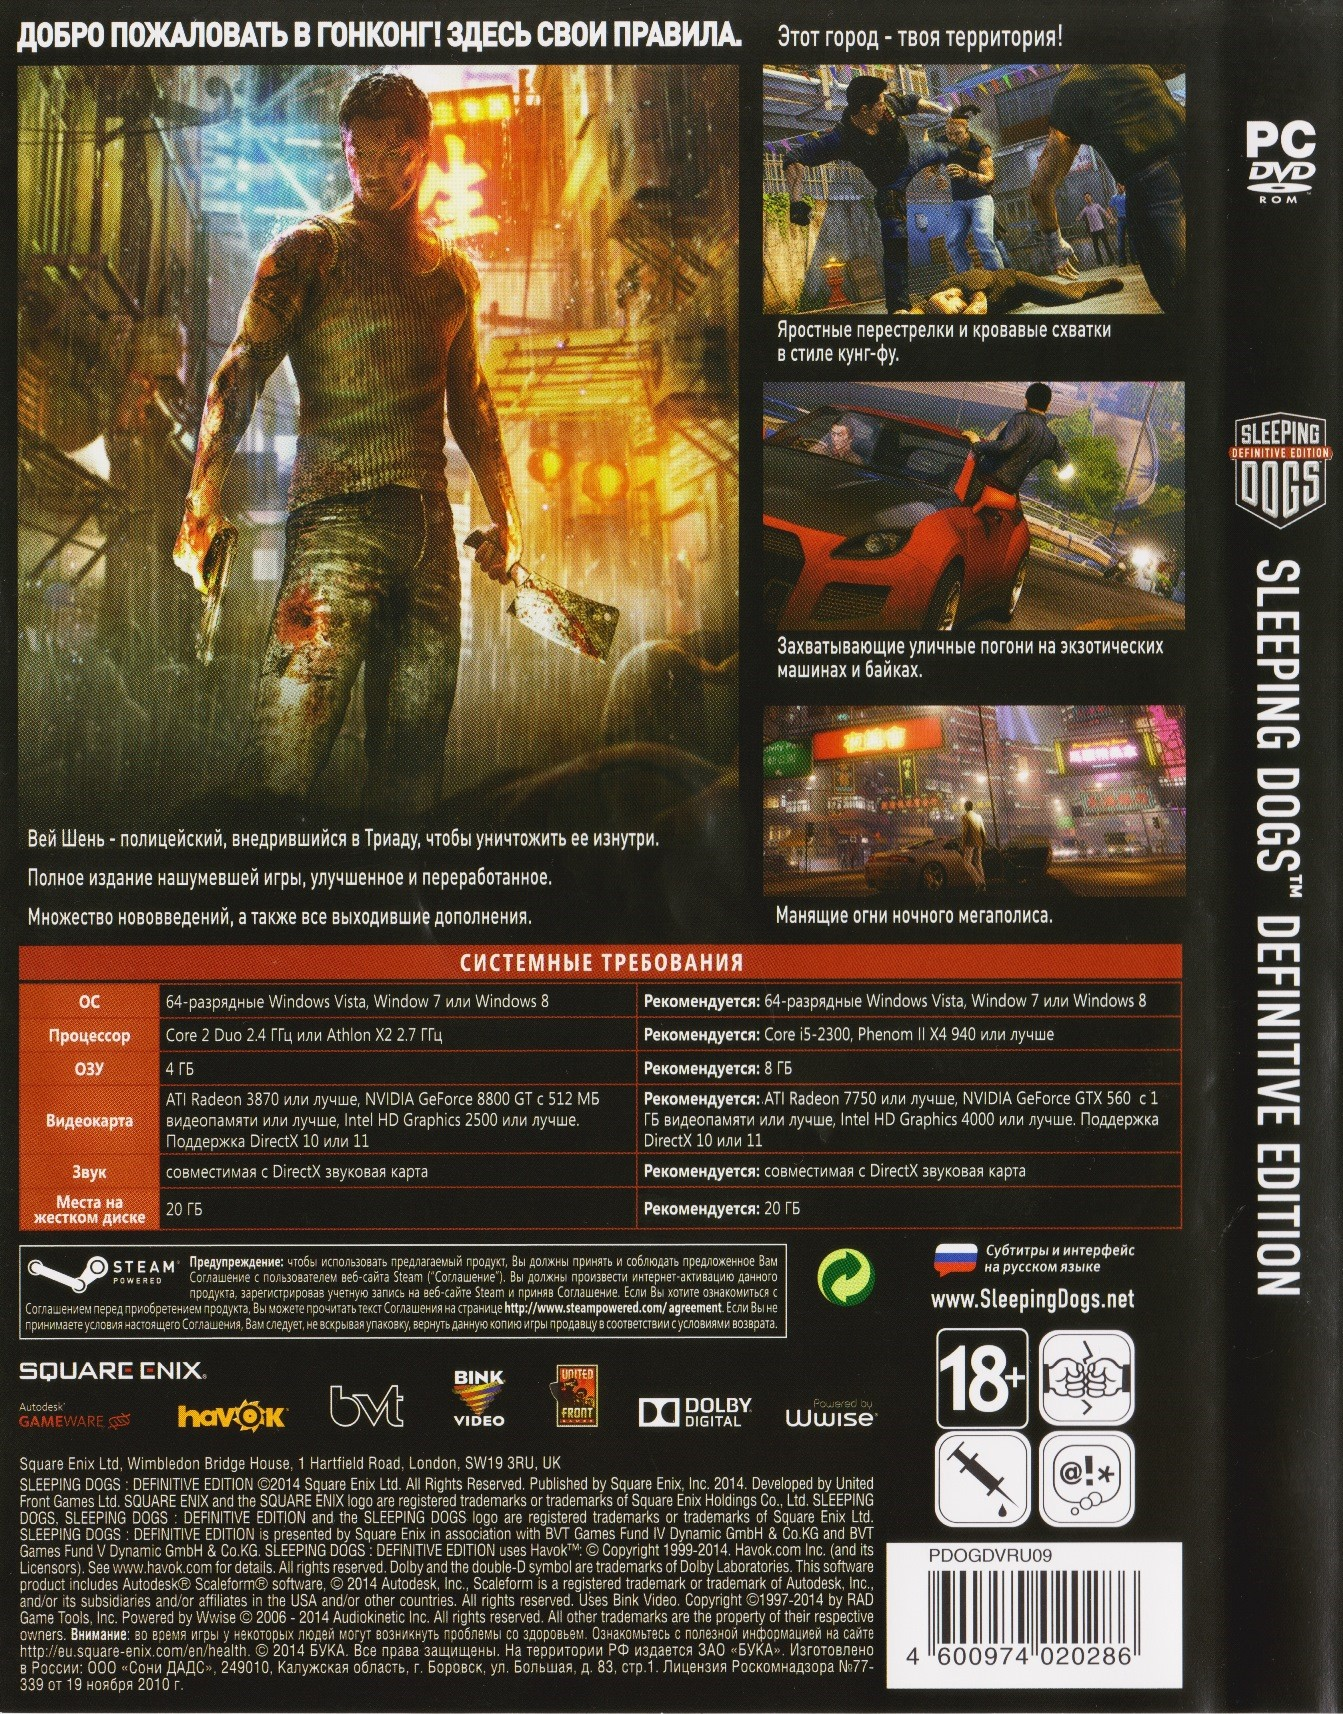 Sleeping Dogs. Definitive Edition (Photo CD-Key) STEAM